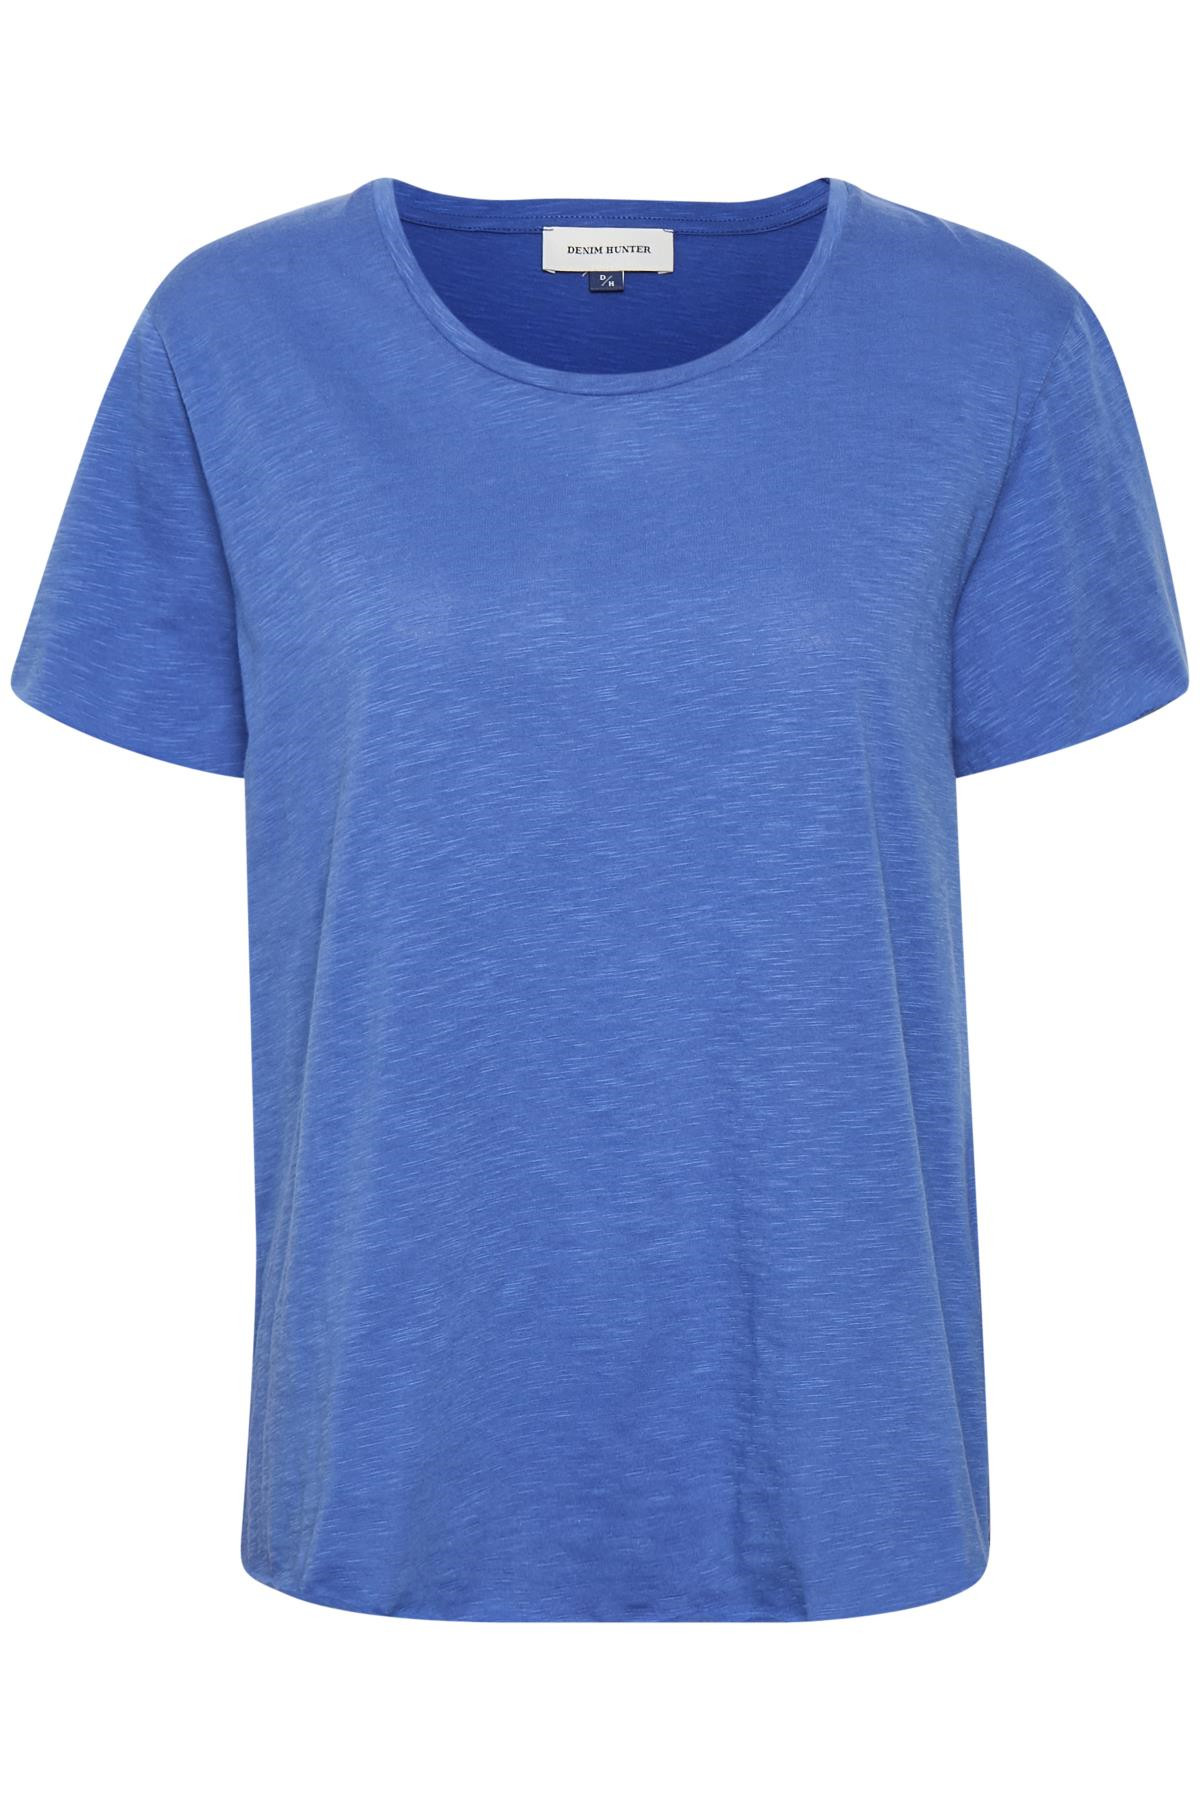 Image of   Denim Hunter LUZ O NECK TEE 10702307 D (Dazzling Blue 38071, XS)